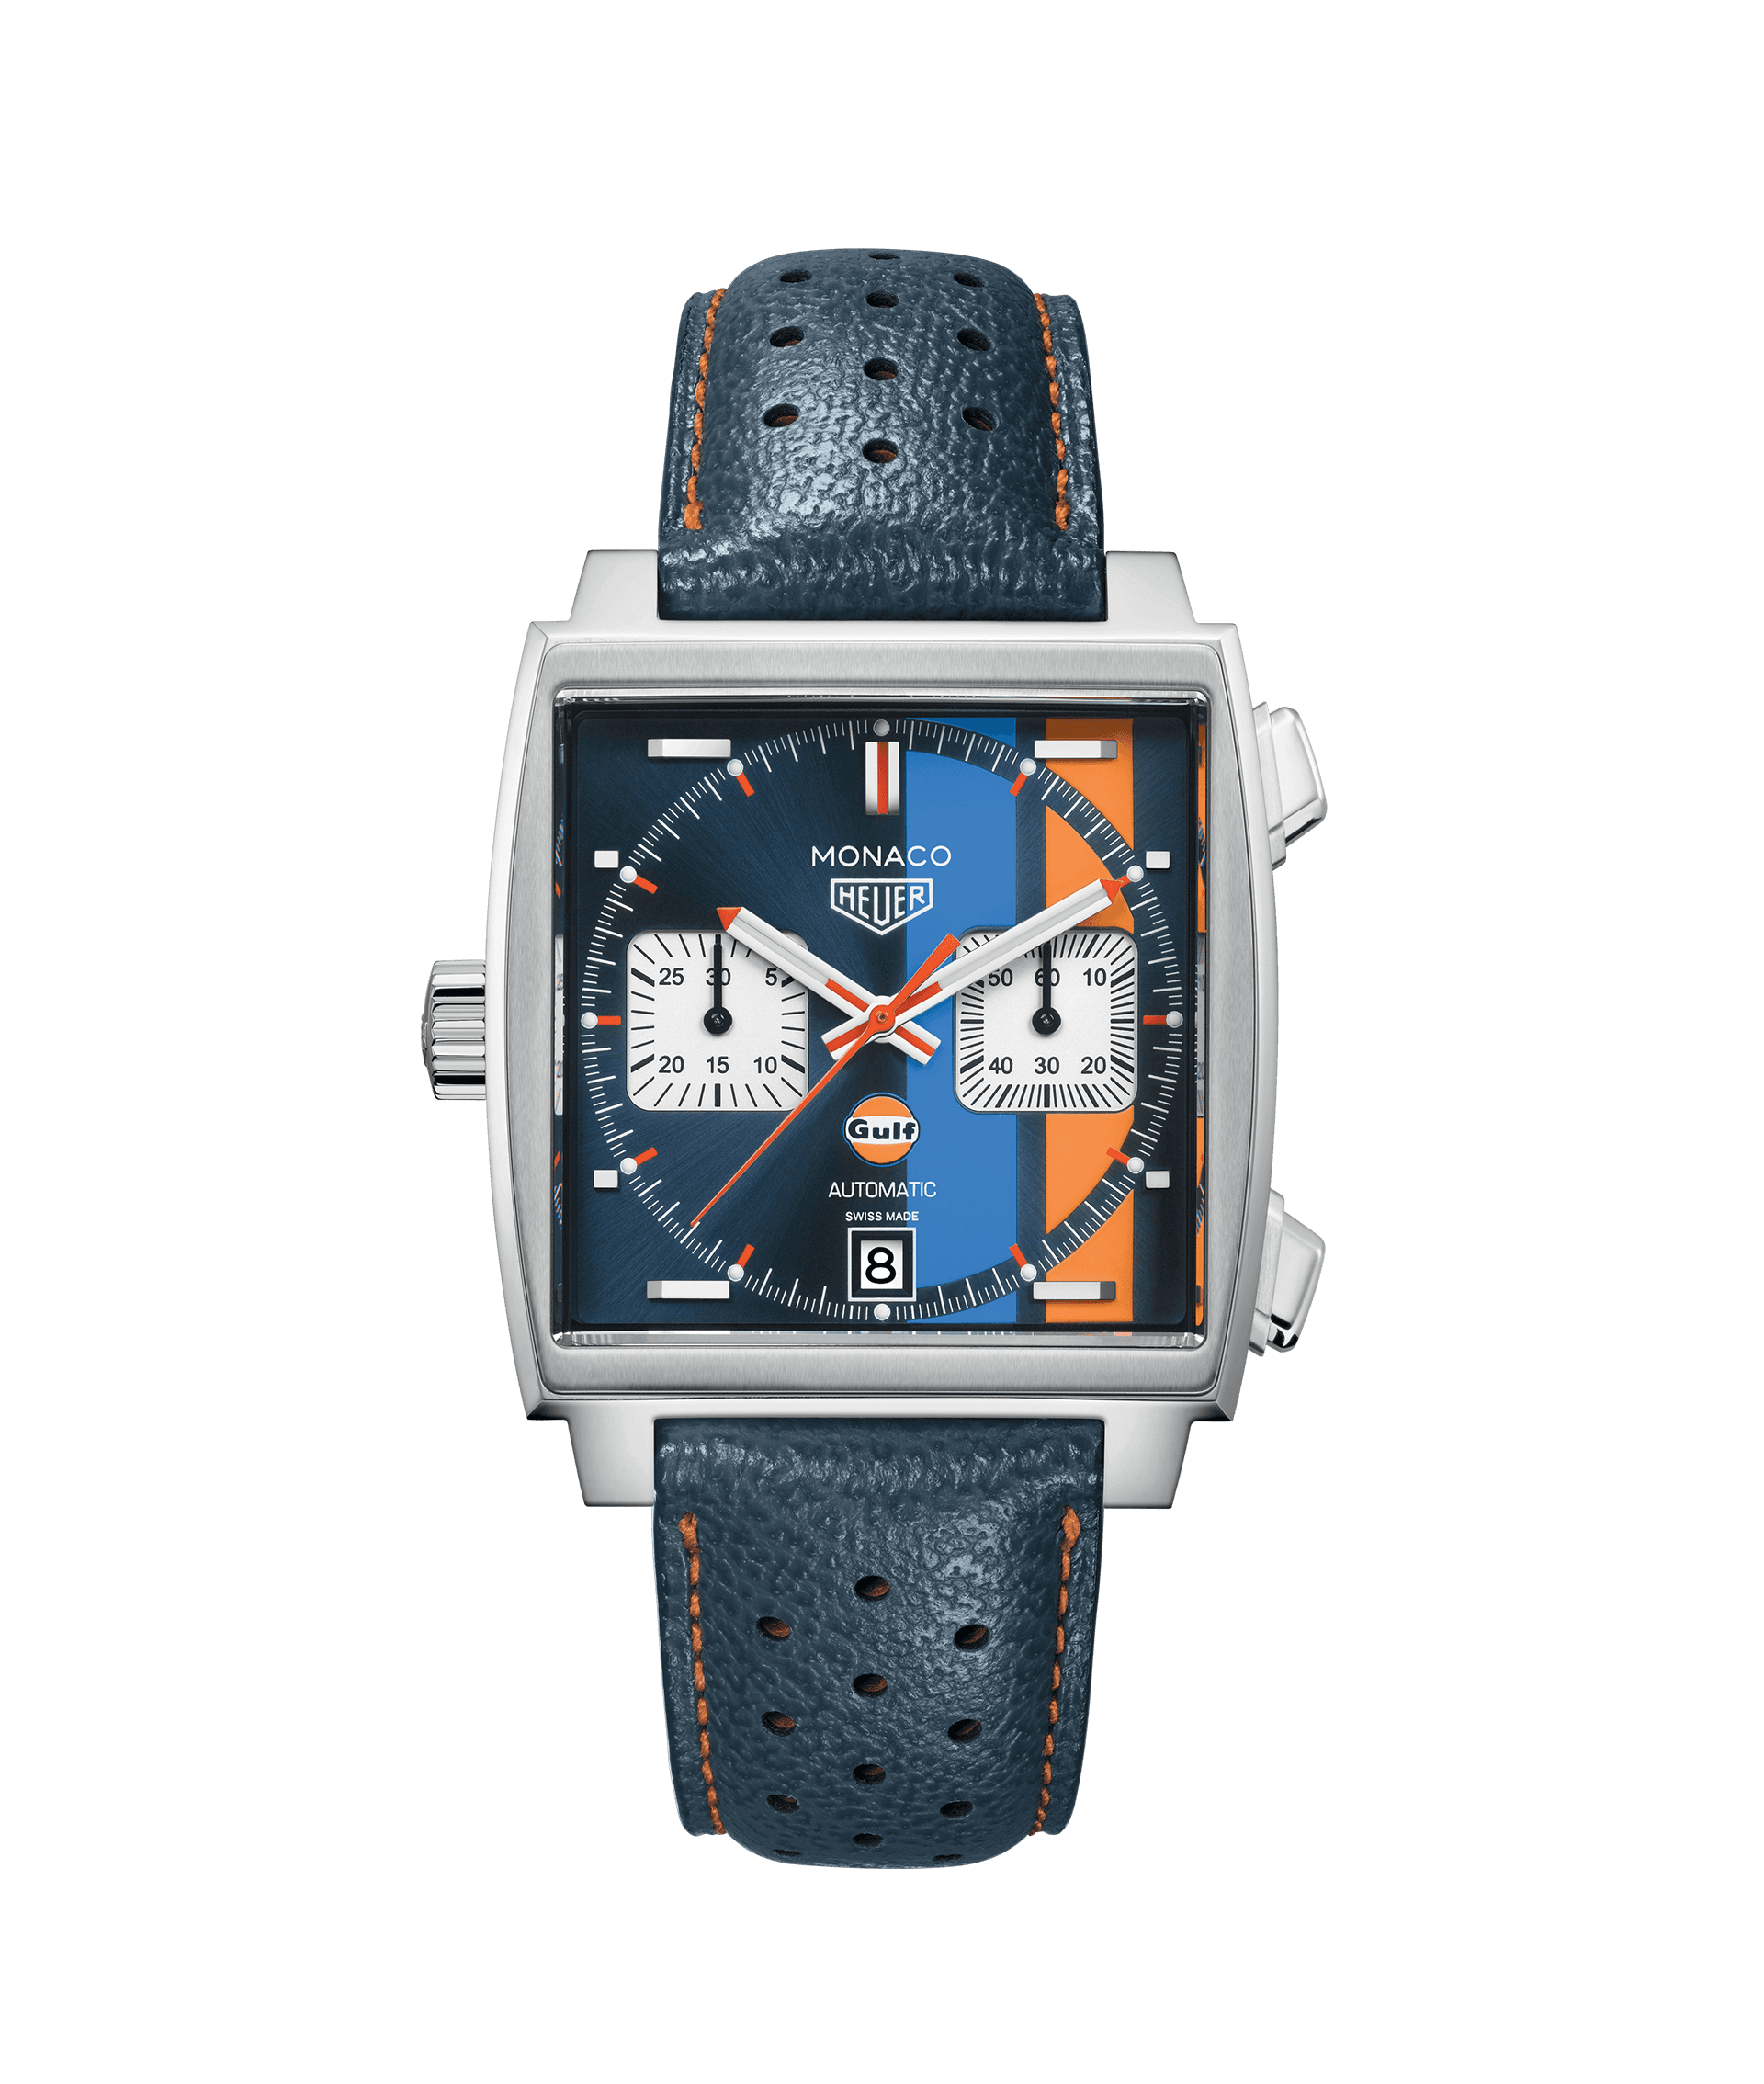 A 39mm stainless steel Tag Heuer Monaco calibre 11 'GULF' automatic watch